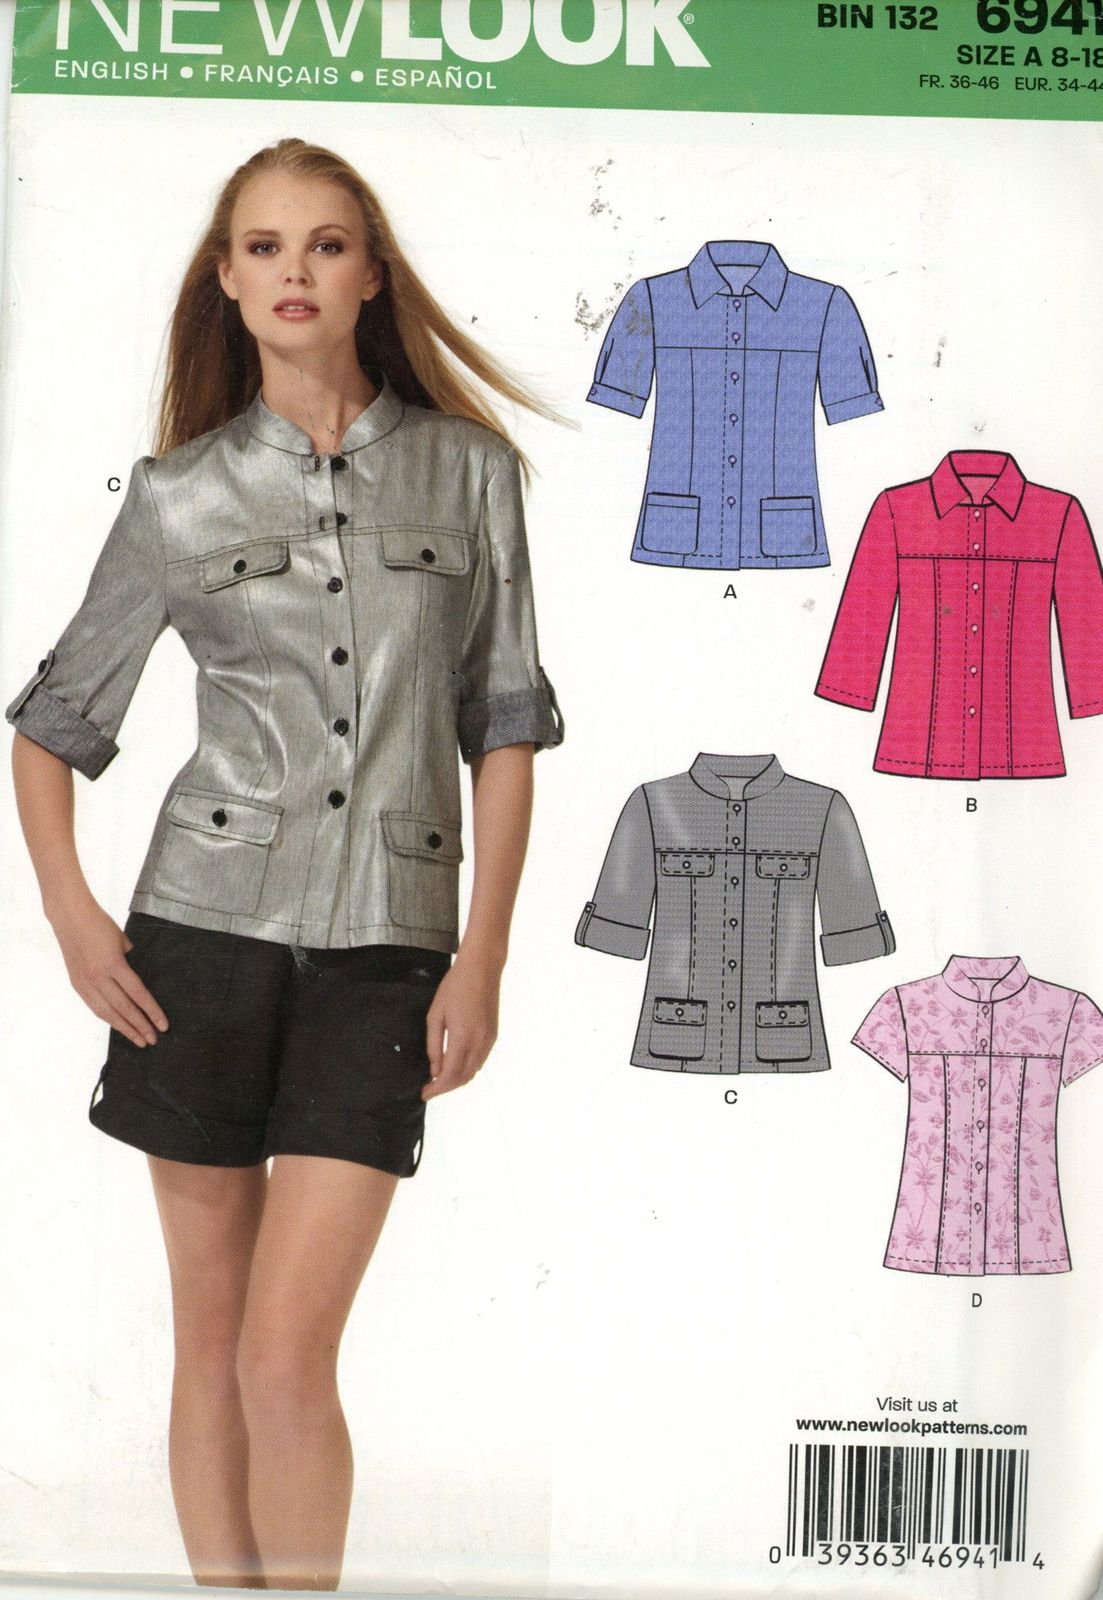 New Look 6941 funky jacket or shirt, 4 styles Sz 8-18 UNCUT